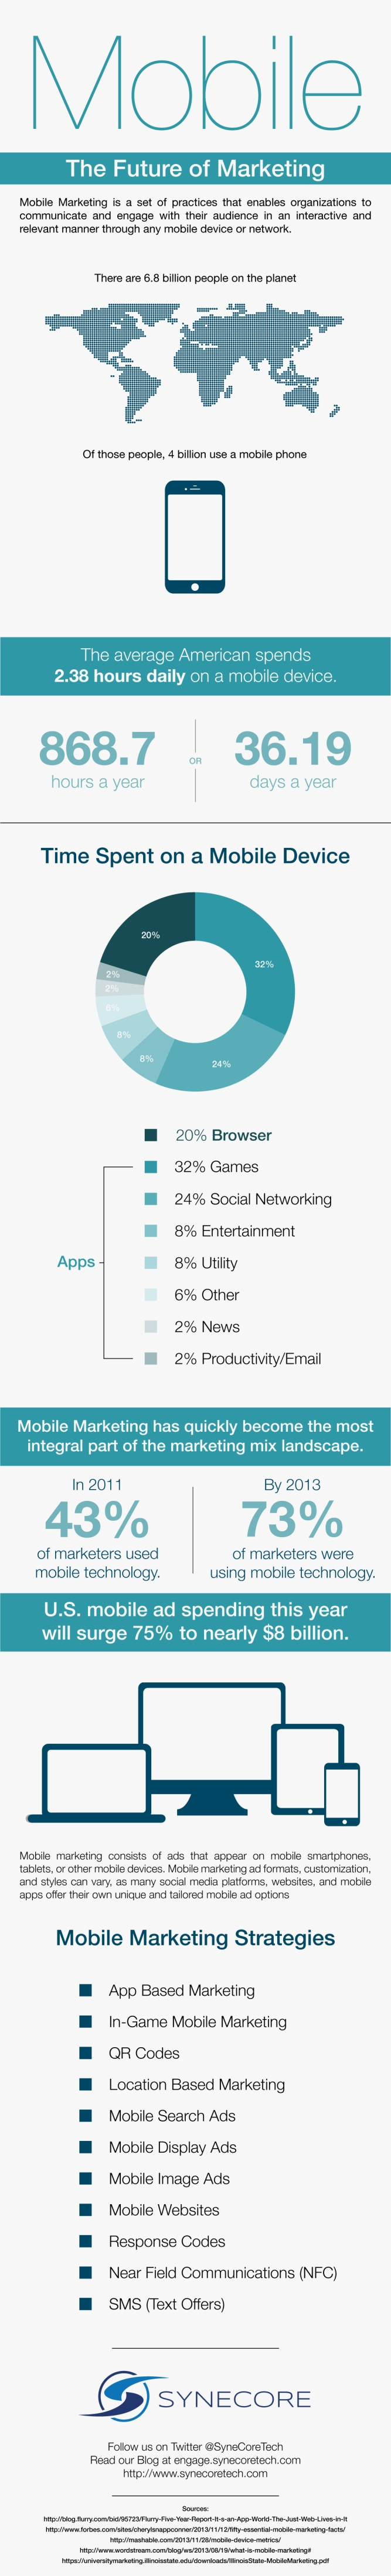 Mobile-Marketing-Infographic-Large